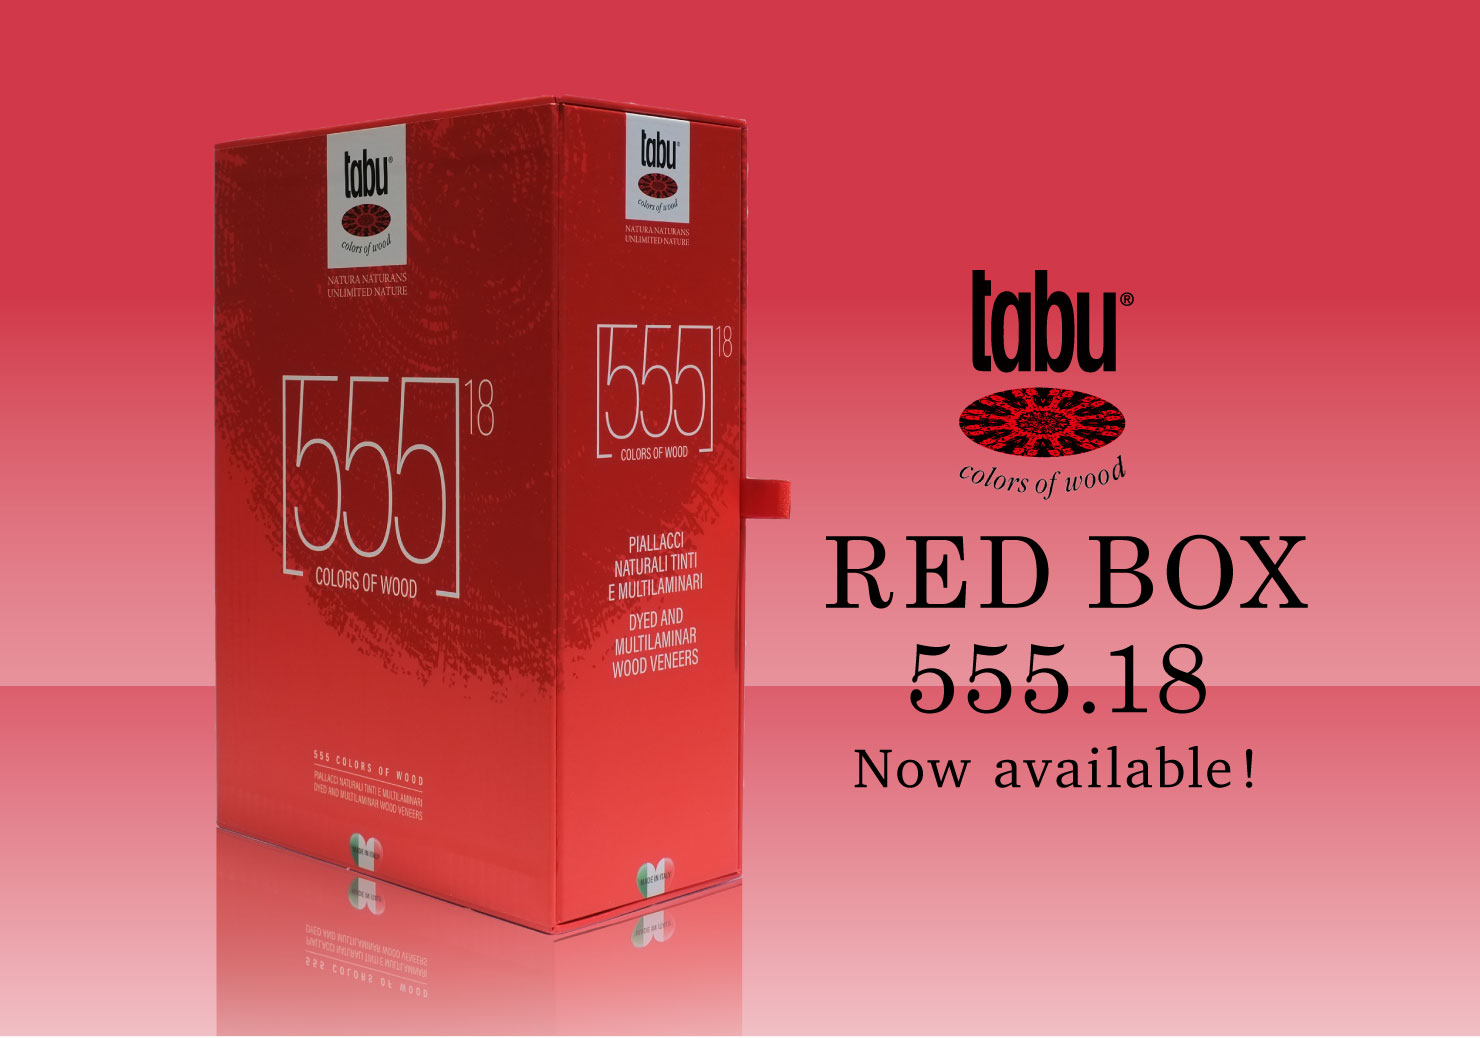 tabu RED BOX 555.18 Now available!